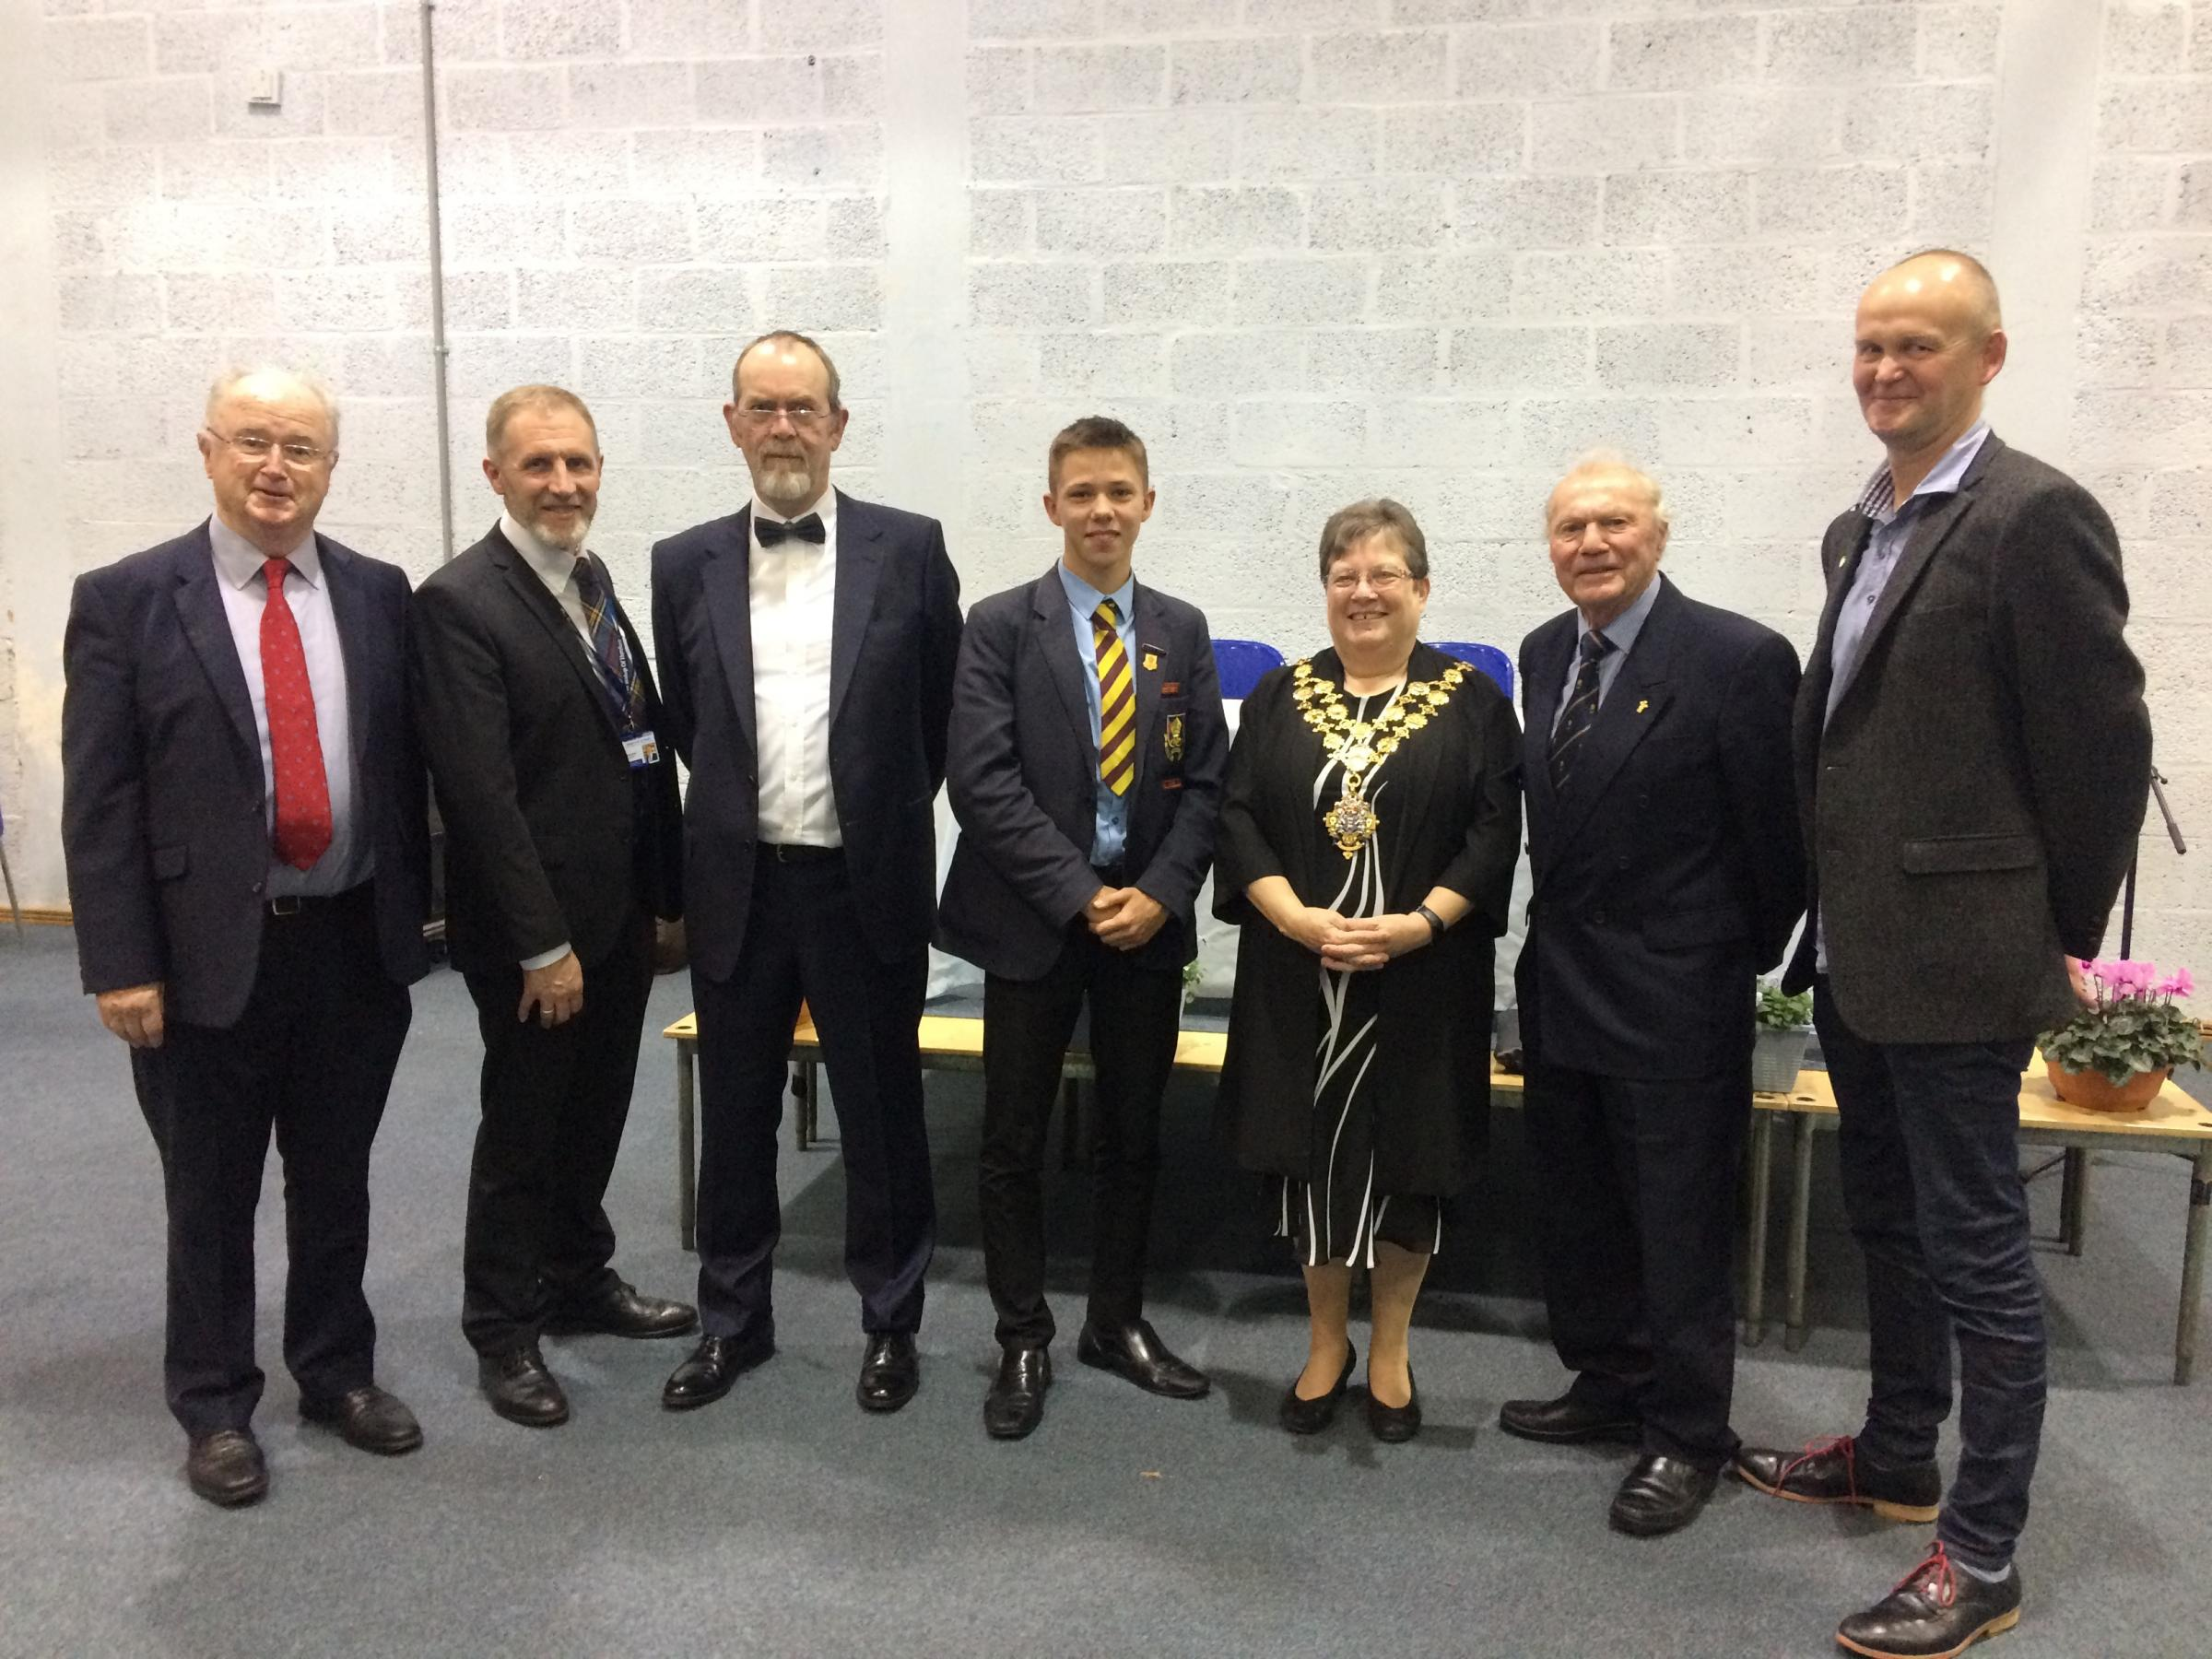 Pictured (left to right) are chairman of governors Tim O'Byrne, headteacher Martin Henton, Professor Dave Allen from NMITE, head boy Sam Fitzer, Mayor of Hereford Cllr Sue Boulter, John Escott and Richard Ecclestone